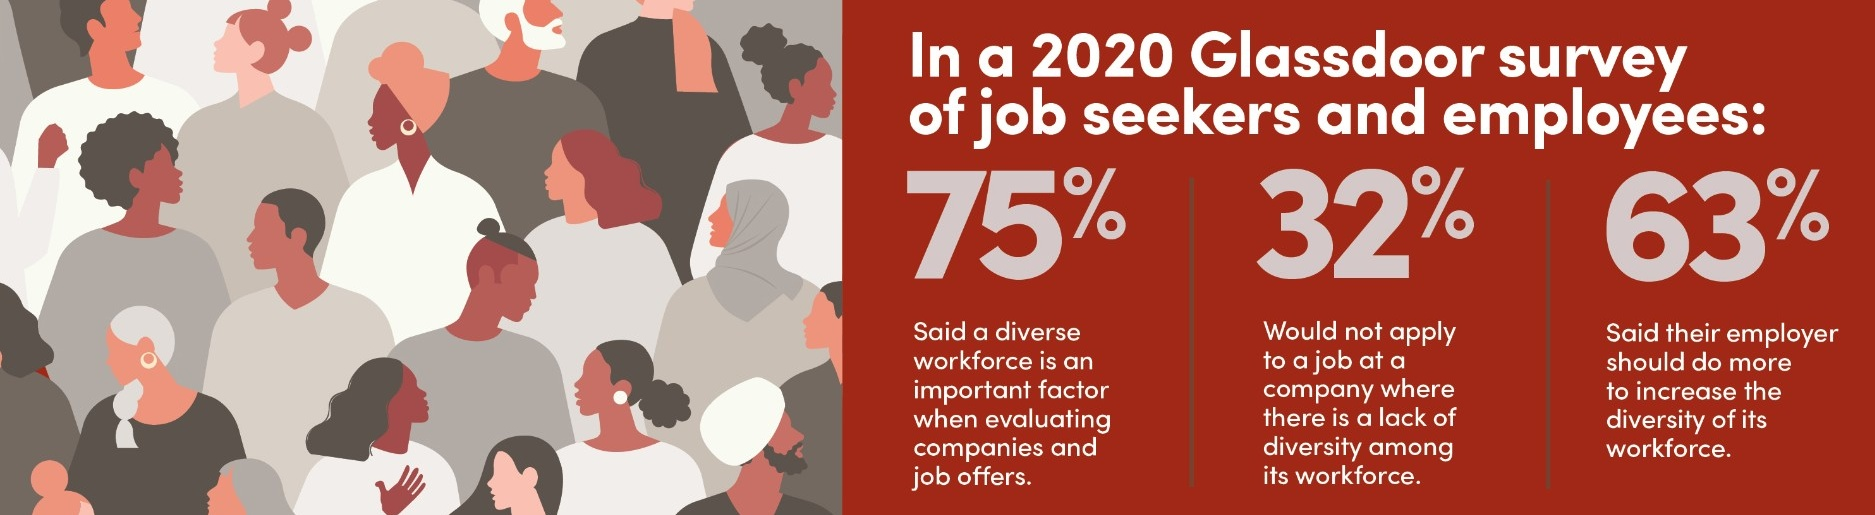 Infographic about a 2020 survey that found: 75% of job seekers and employees say a diverse workforce is an important factor when evaluating job offers; 32% would not apply to a company with a lack of diversity; and 63% say their employer should do more to increase the diversity of its workforce.